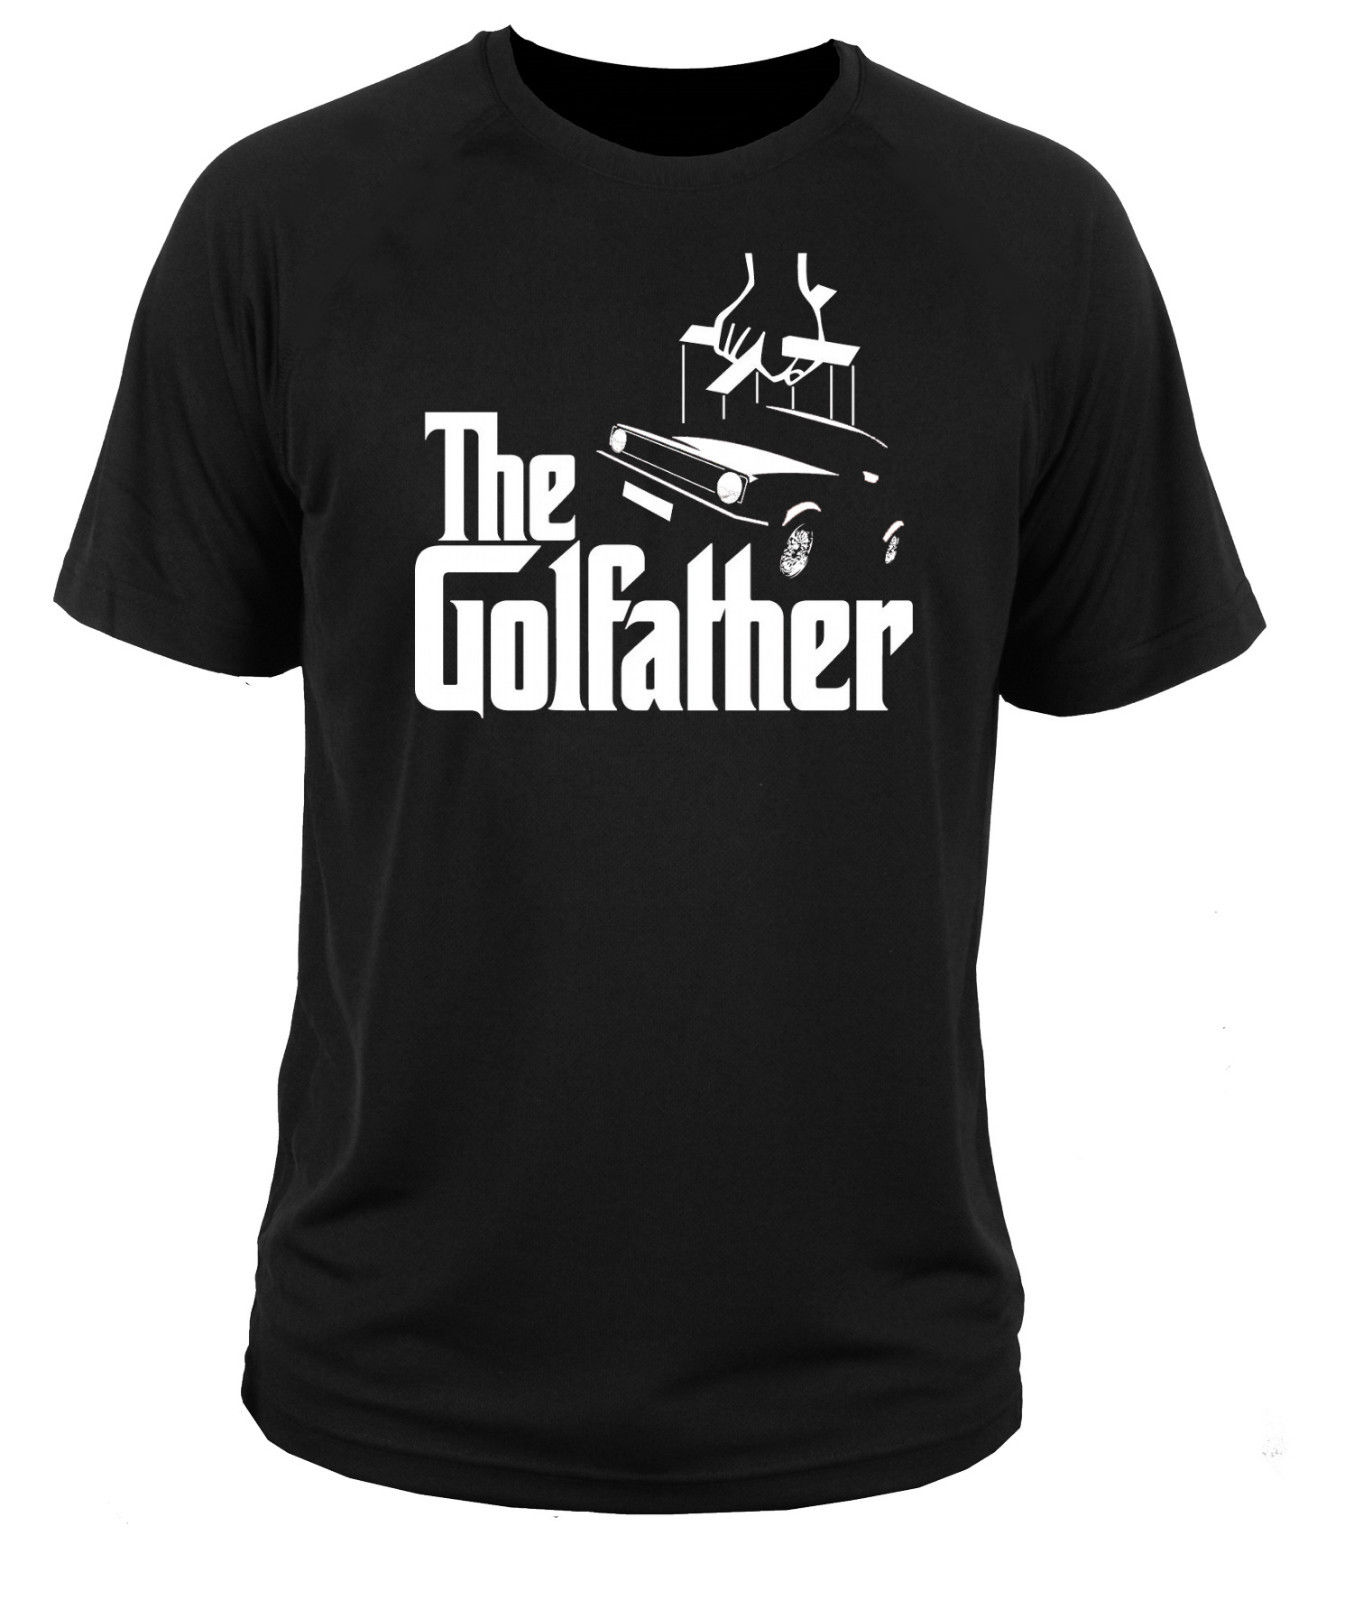 2018 New Cool Tee Shirt T Shirt T-shirt Golfather Golfs Caddy Mk1 Mk2 Mk3 Mk4 Car Tees